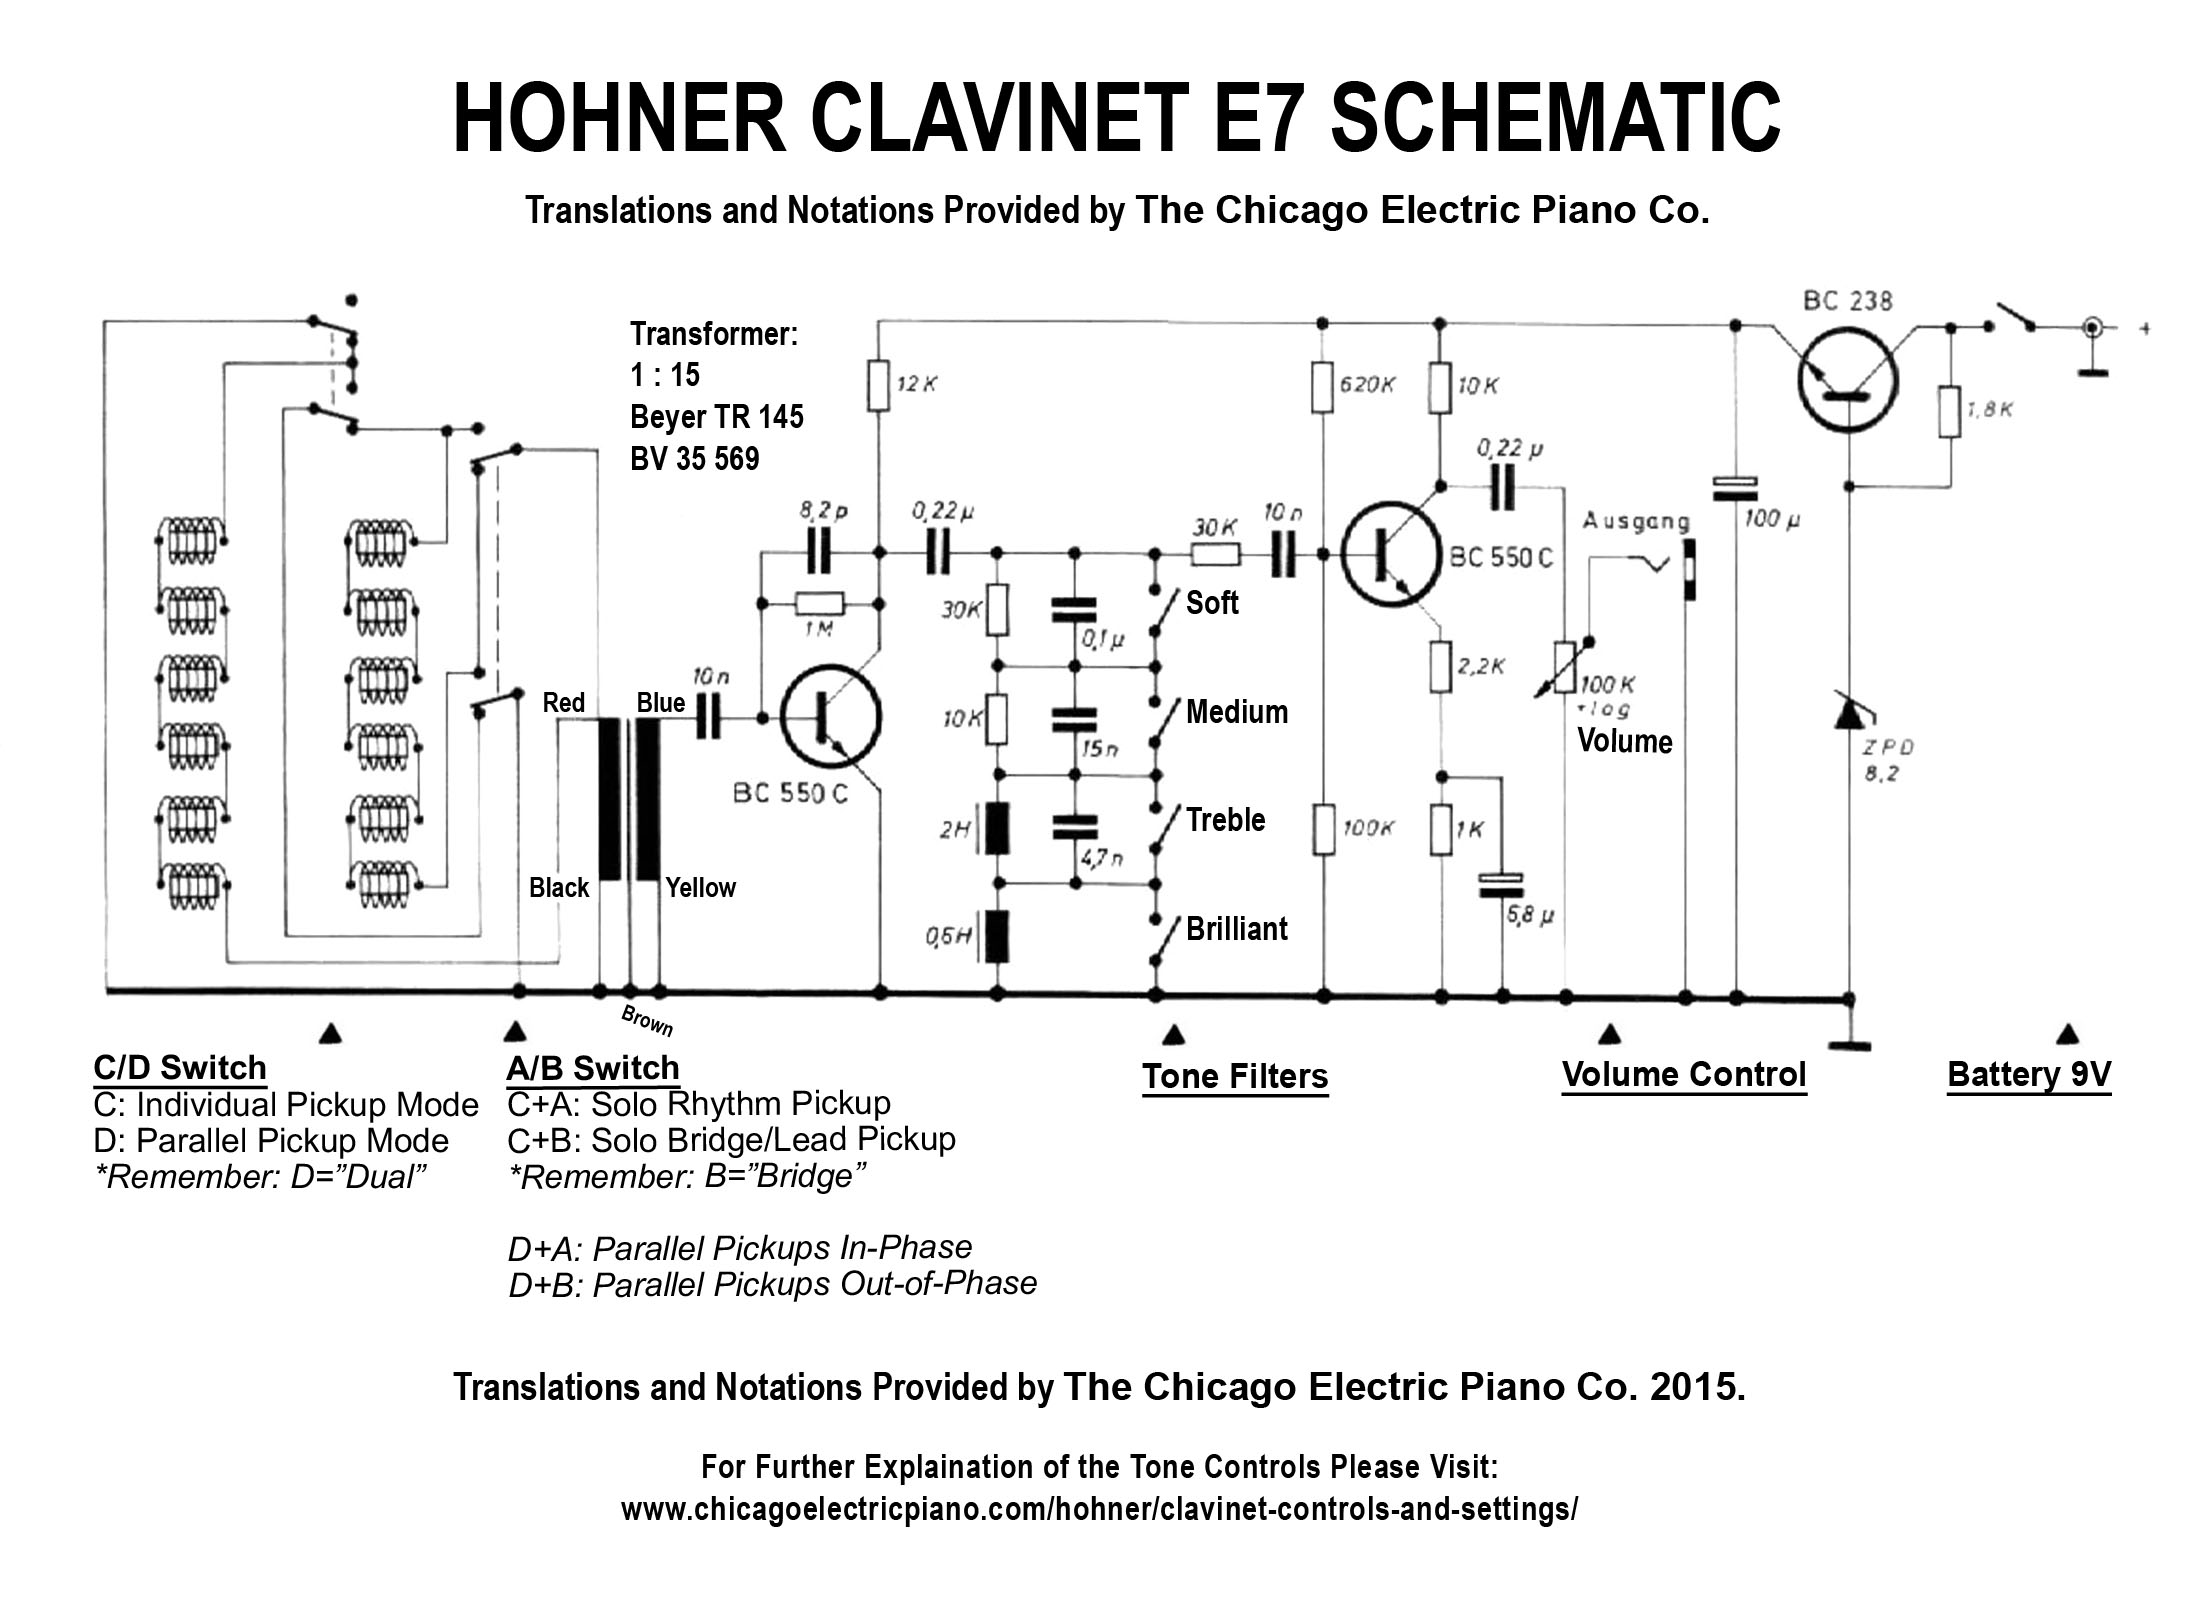 Mad Scientist Wiring Diagram And Schematics Source Clavinet E7 Schematic